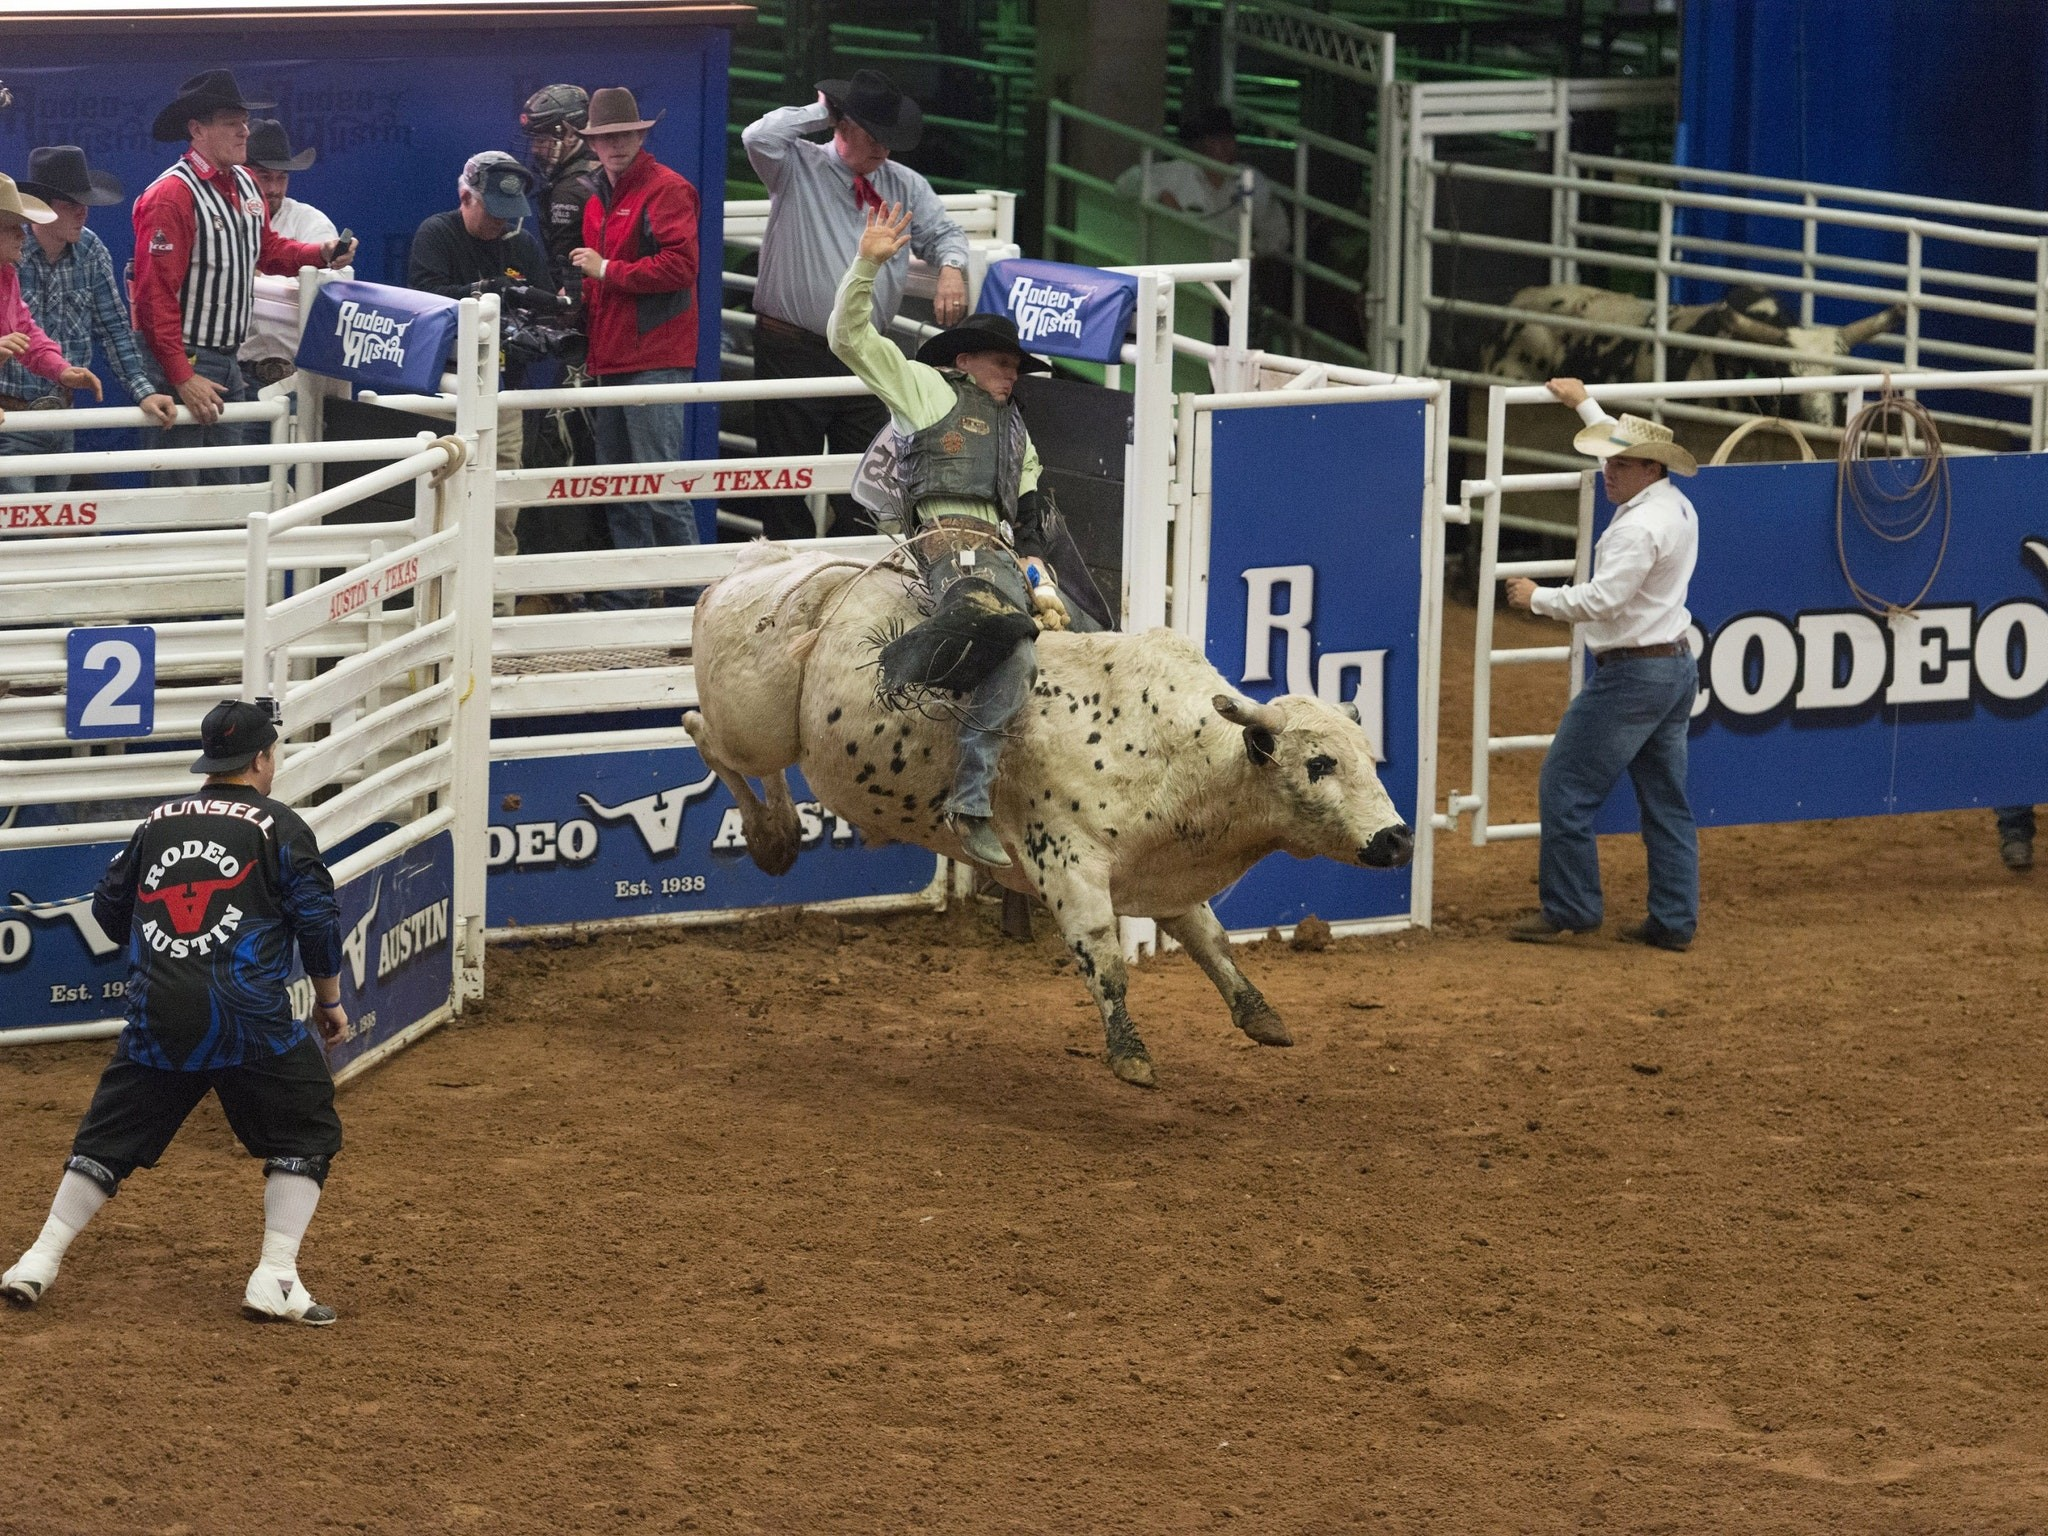 Bull riding wallpapers 62 images for Bull riding madison square garden